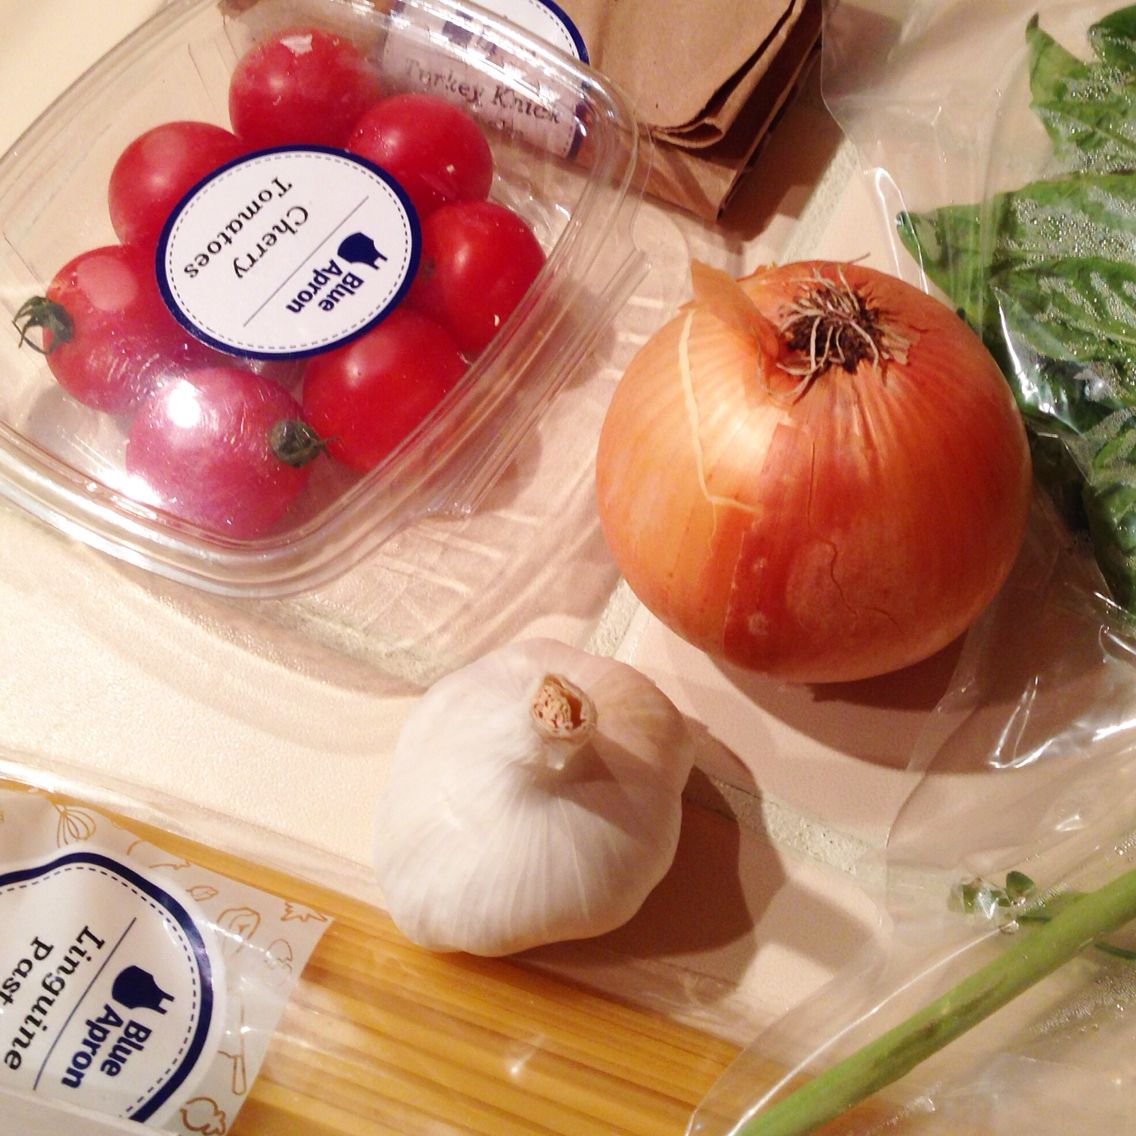 Blue apron packaging - Blue Apron Packaging